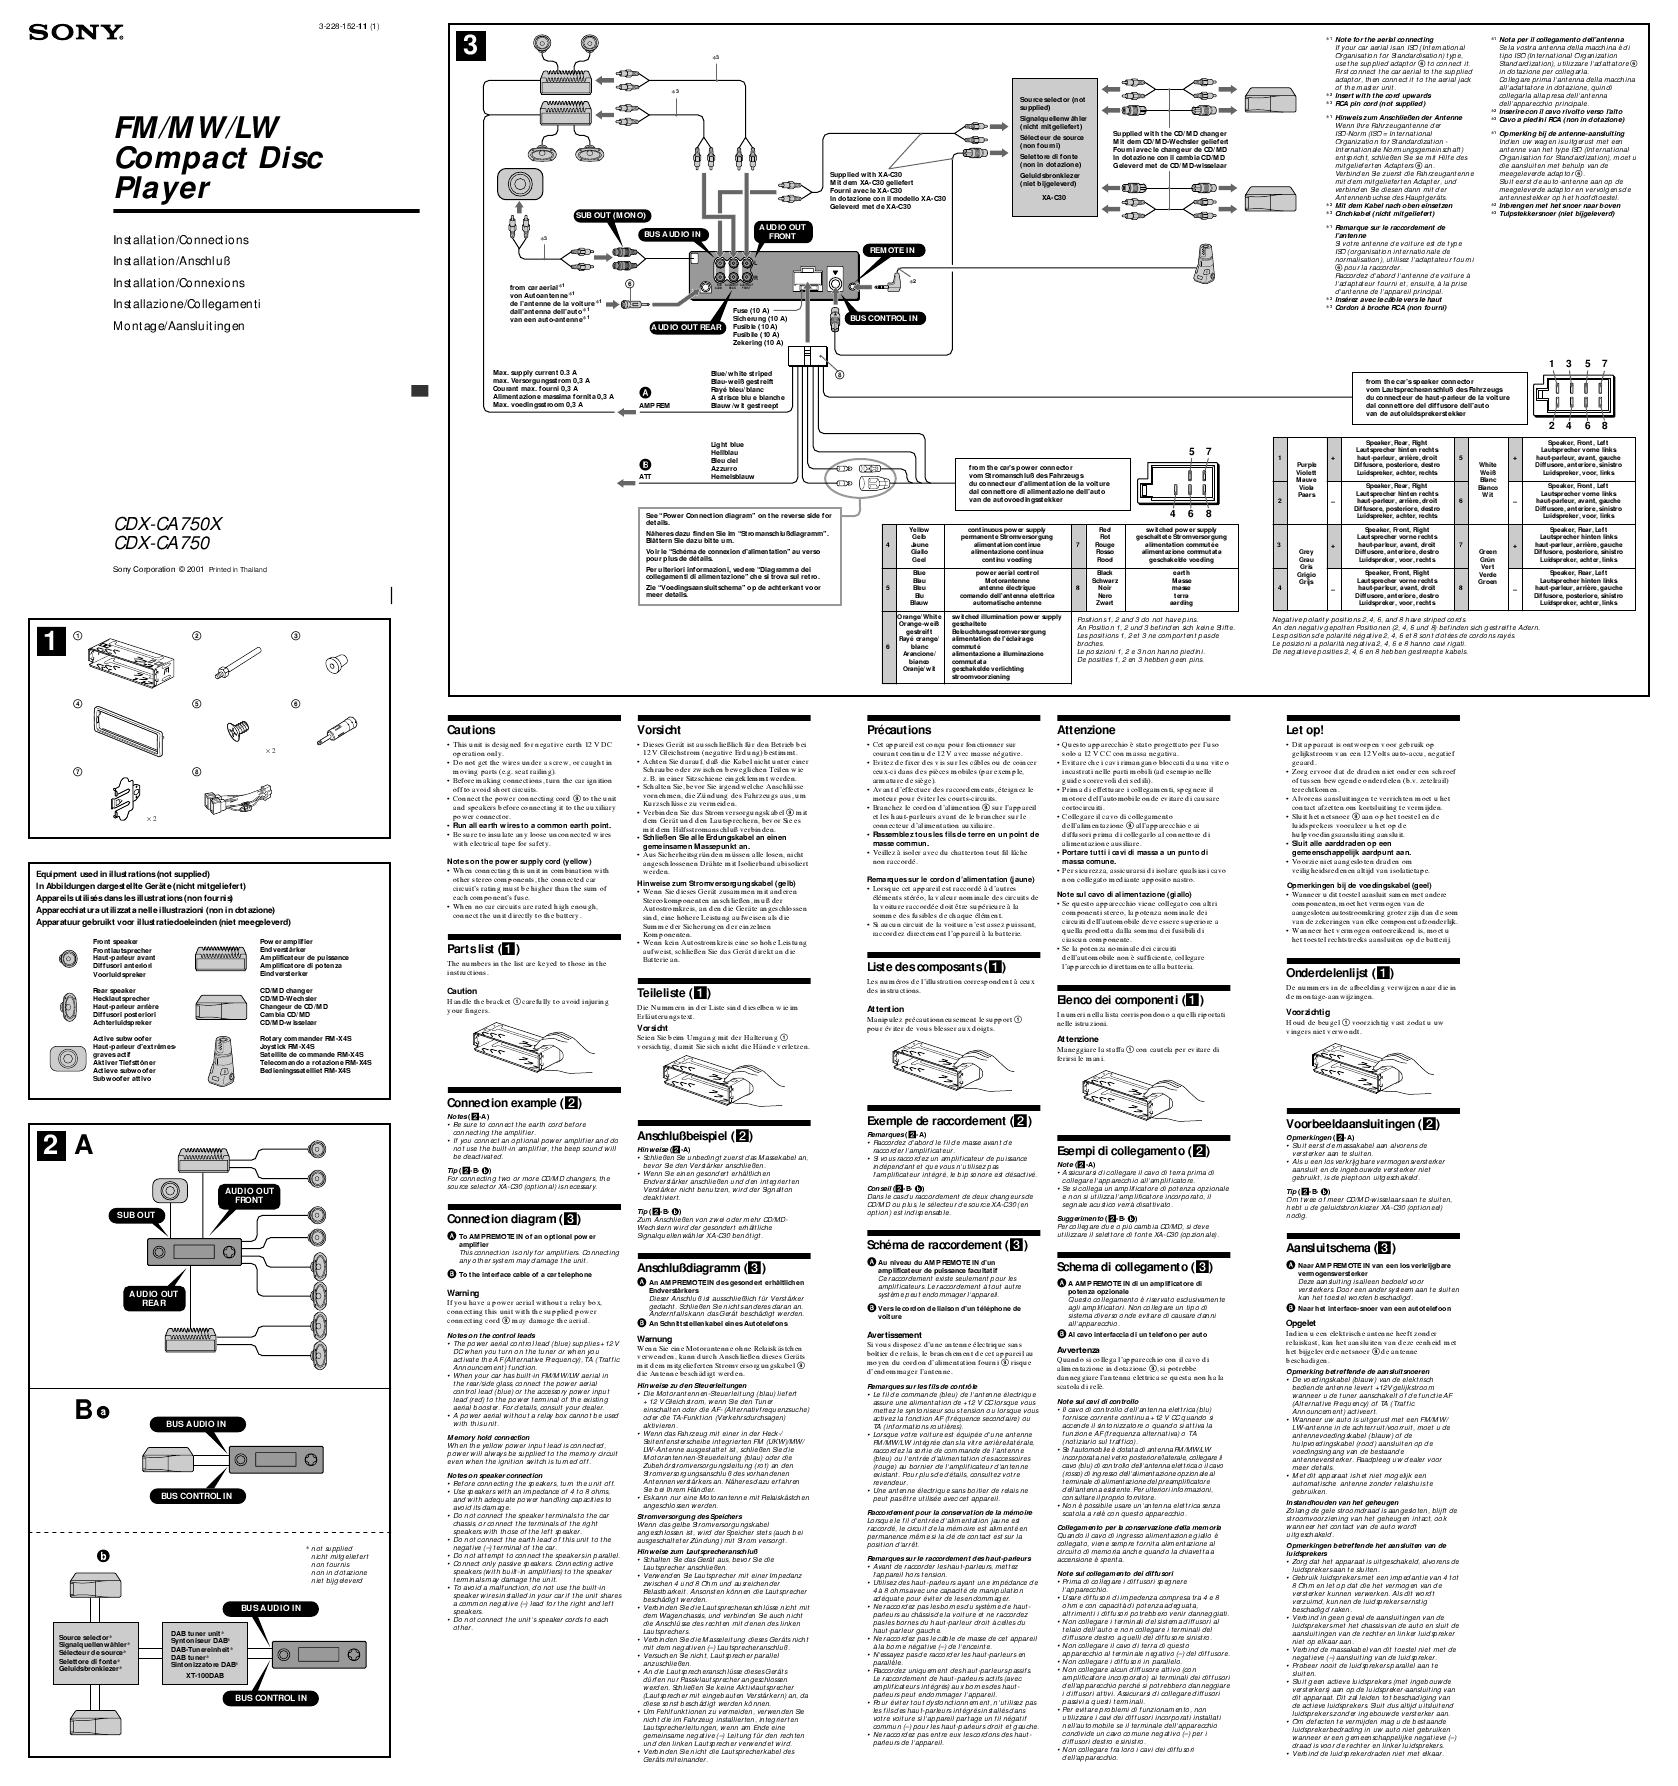 d1c466f3 d12f 49f4 3daf 7b1c7a7ee611 000001 search sony m 470 user manuals manualsonline com sony xav 62bt wiring diagram at mr168.co